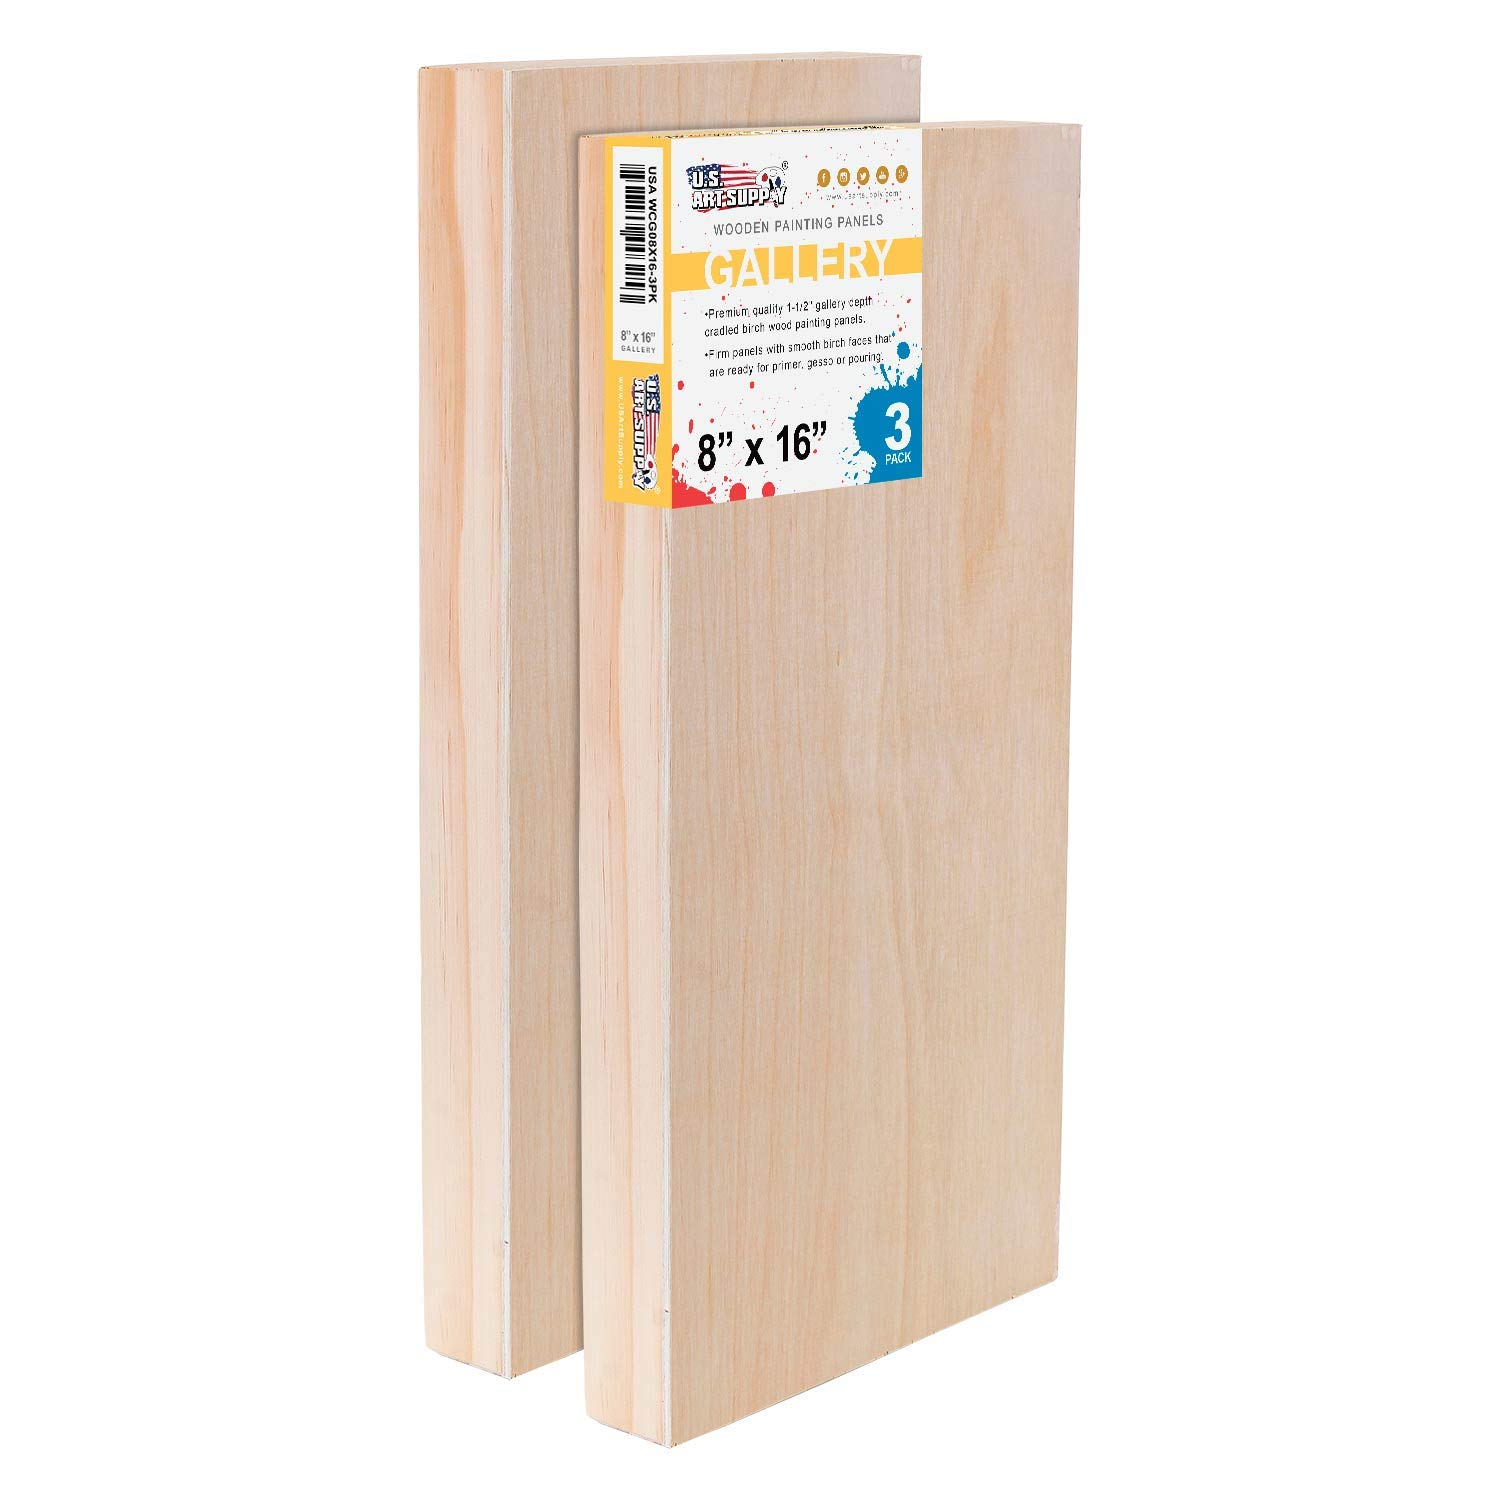 U.S Acrylic - Artist Depth Wooden Wall Canvases Encaustic Painting Mixed-Media Craft Gallery 1-1//2 Deep Cradle Pack of 3 Oil Art Supply 8 x 16 Birch Wood Paint Pouring Panel Boards